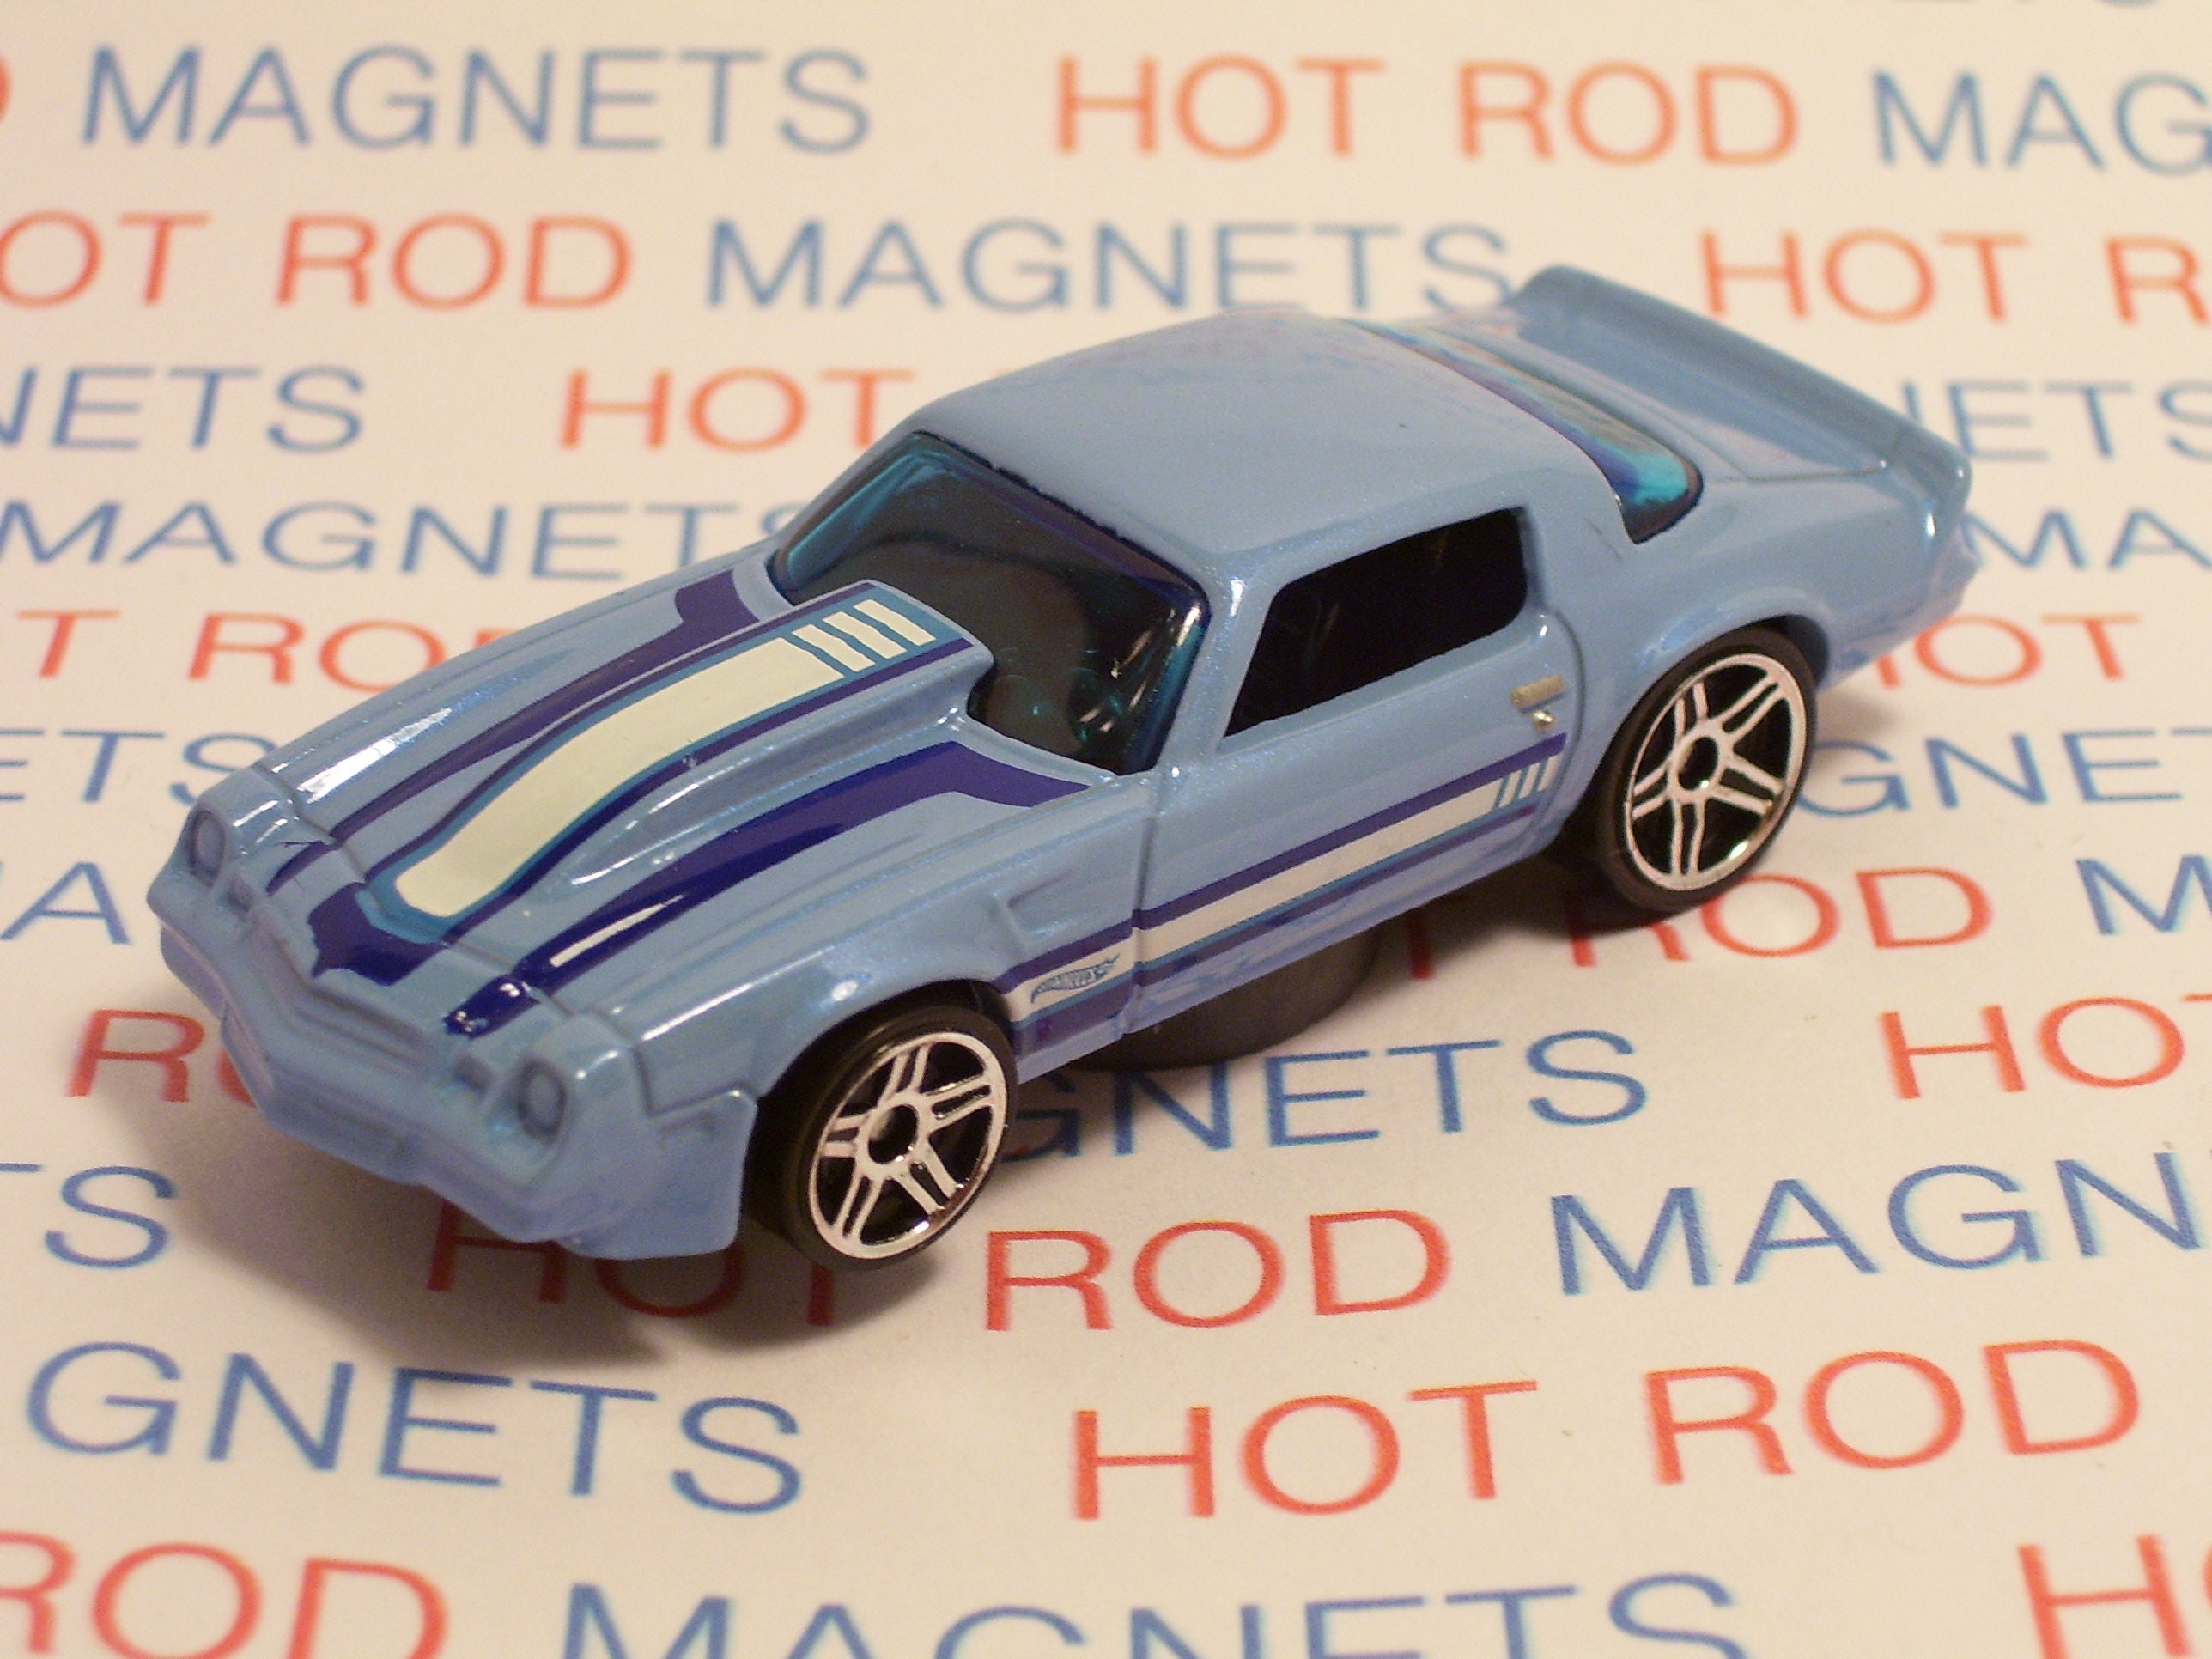 Hot Rod Magnet 1981 Chevrolet Camaro Hot Rod